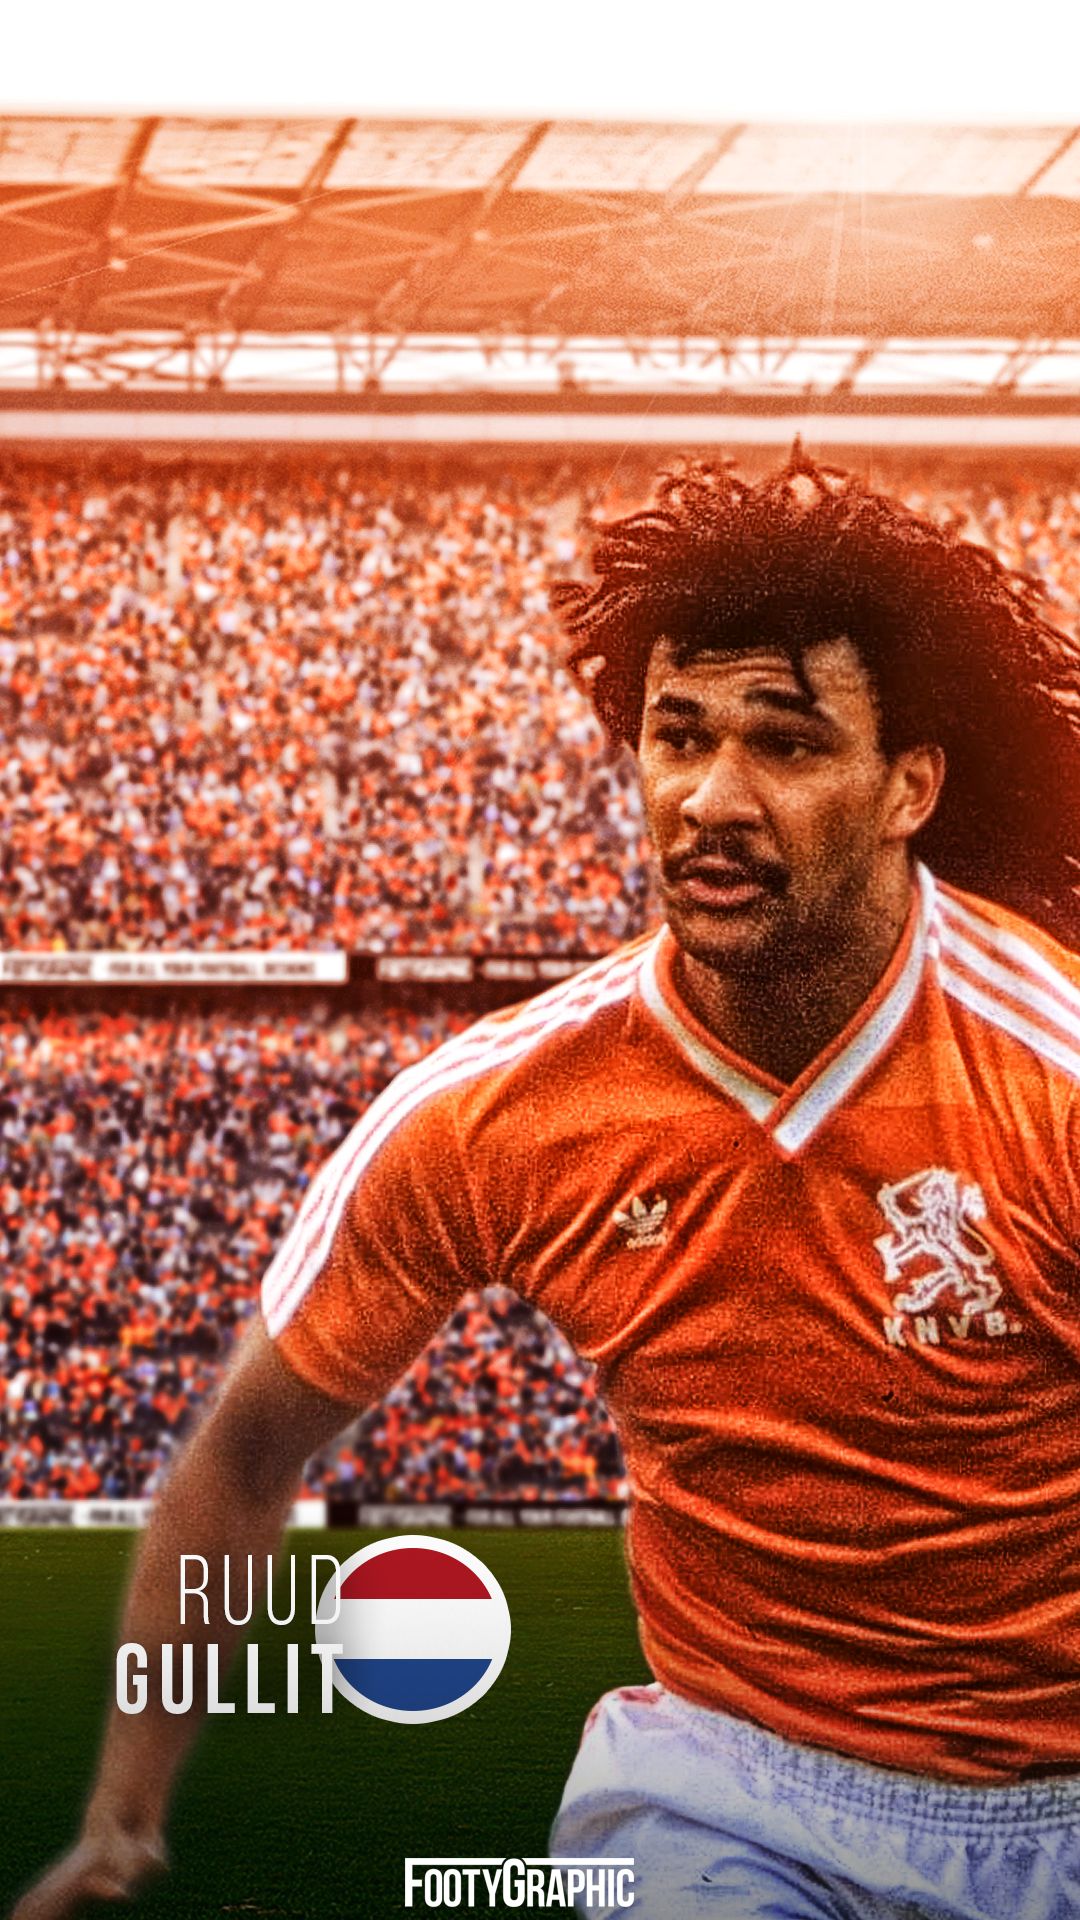 Ruud Gullit lockscreen FootyGraphic 1080x1920